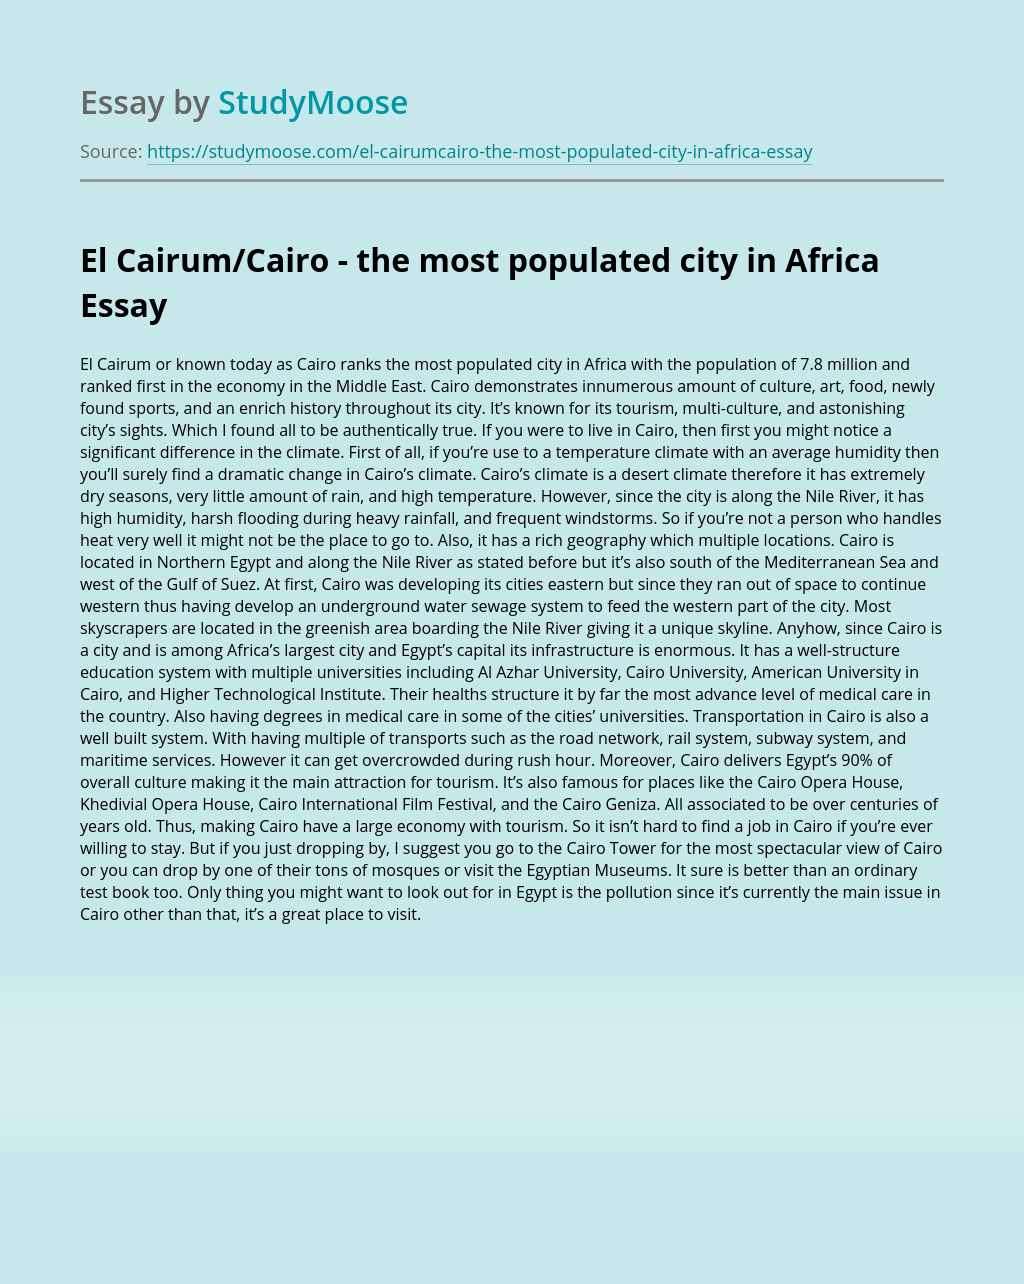 El Cairum/Cairo -  the most populated city in Africa